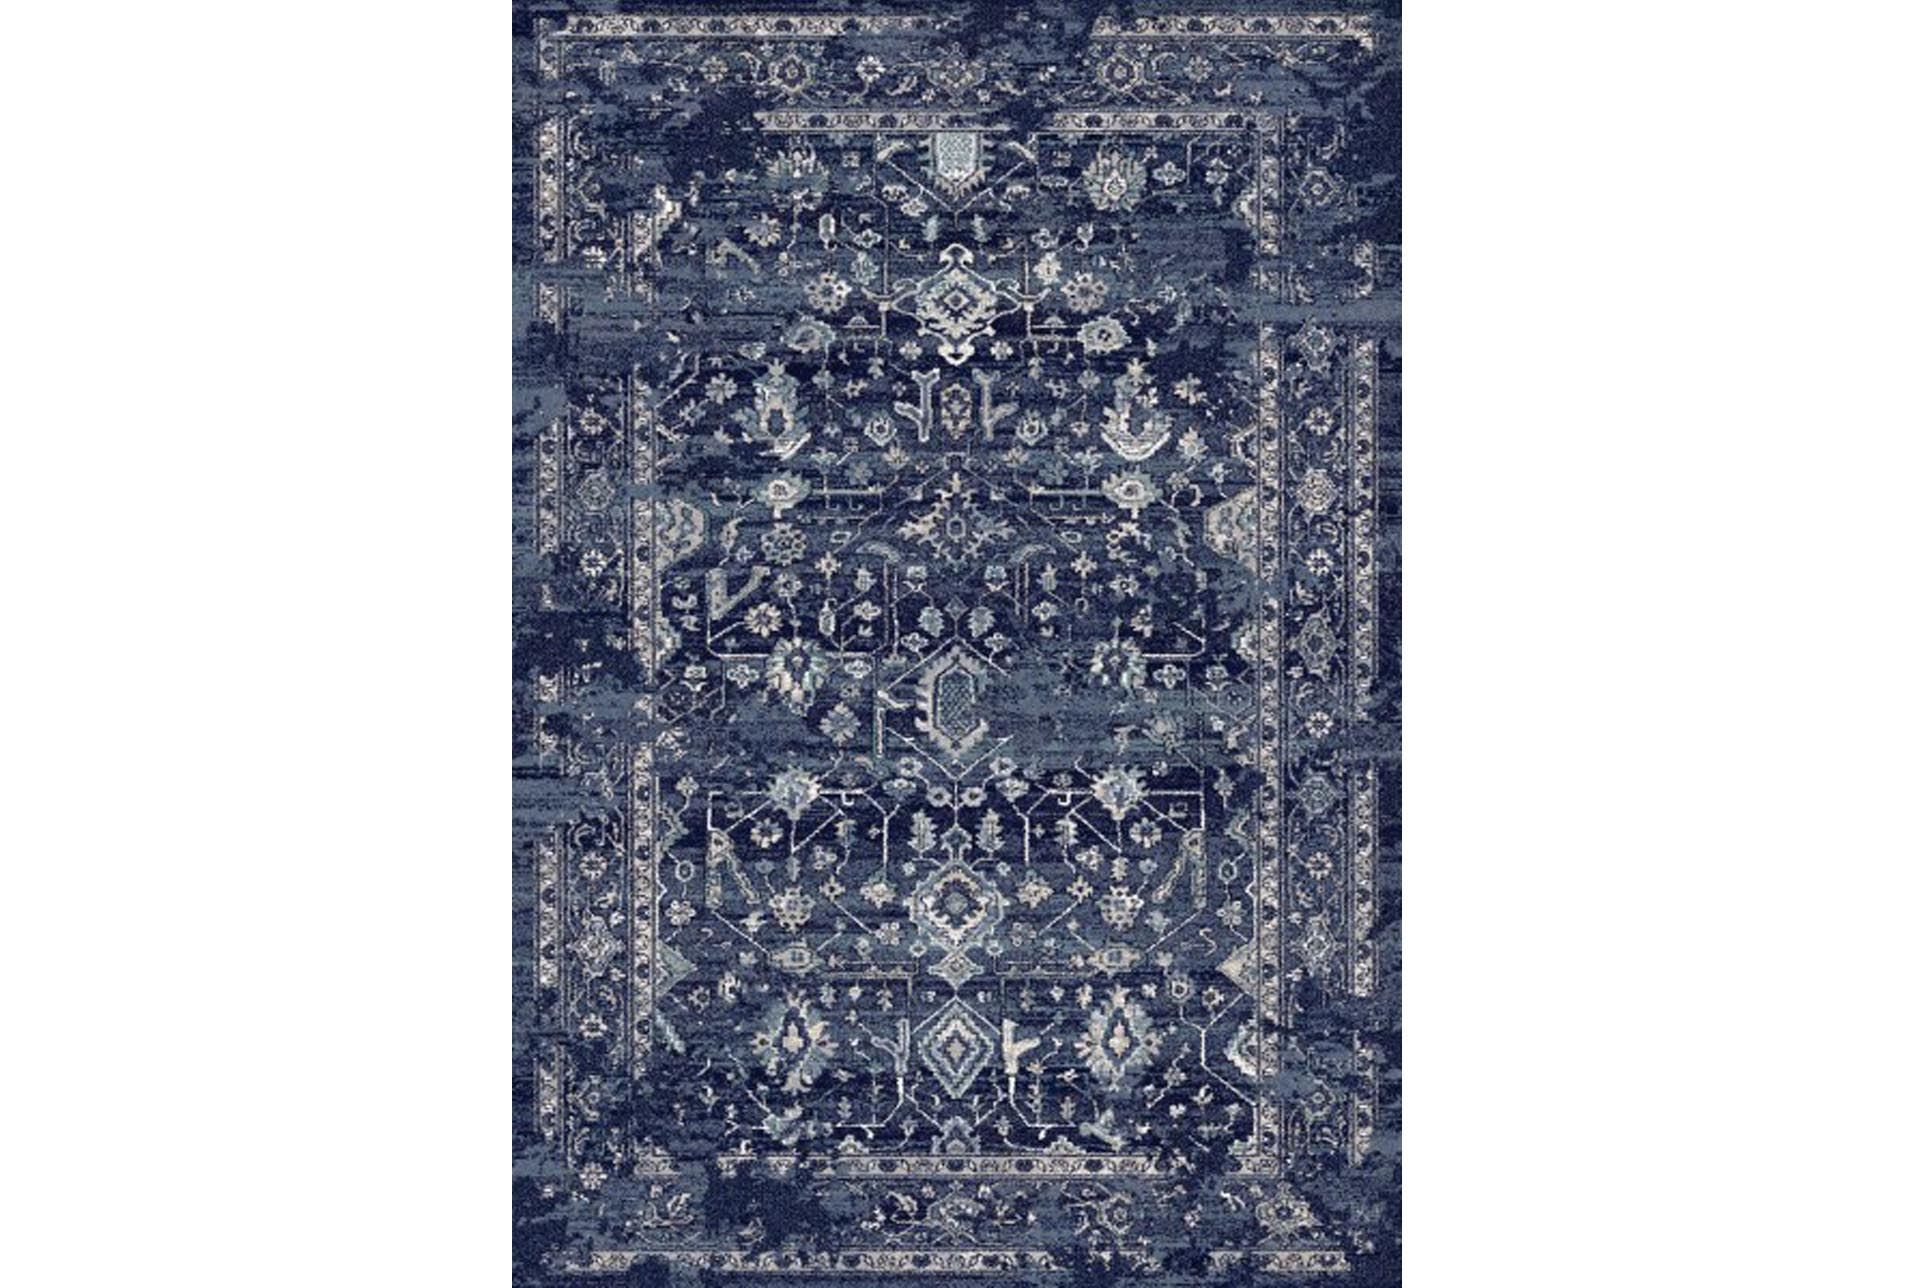 94x134 rug courtney indigo living spaces for Living spaces rugs